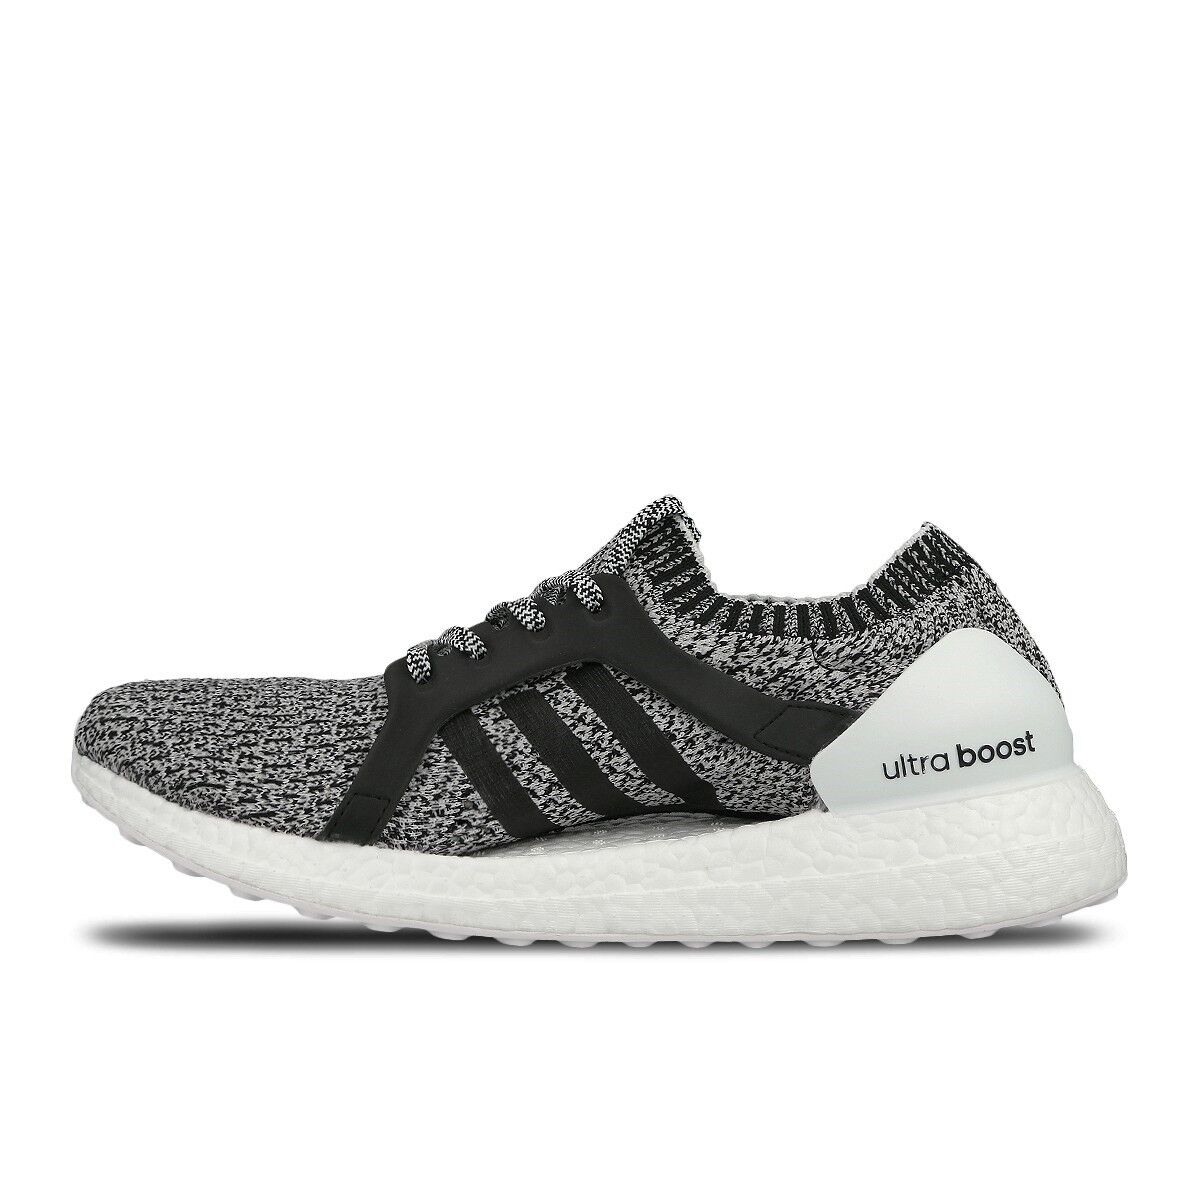 Adidas ULTRABOOST X  Running WhiteCore Black Sneaker CG2977 (467) Women's shoes